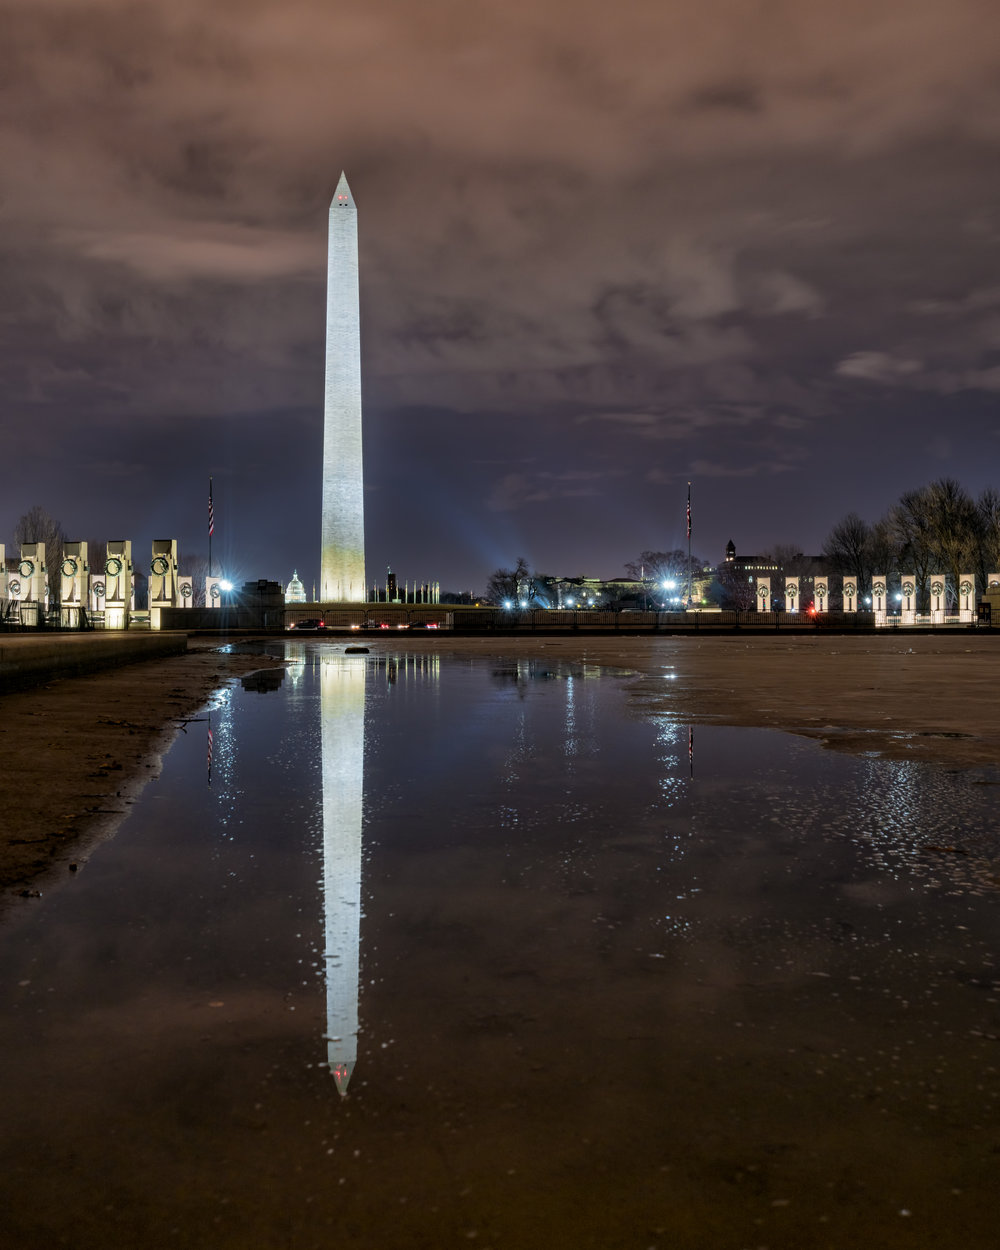 This was a bit of a unique angle as I was able to step out into the reflecting pool as the water is starting to thaw and some fun textured water for reflections of the flags, State Capitol, World War II Memorial and Washington Monument.